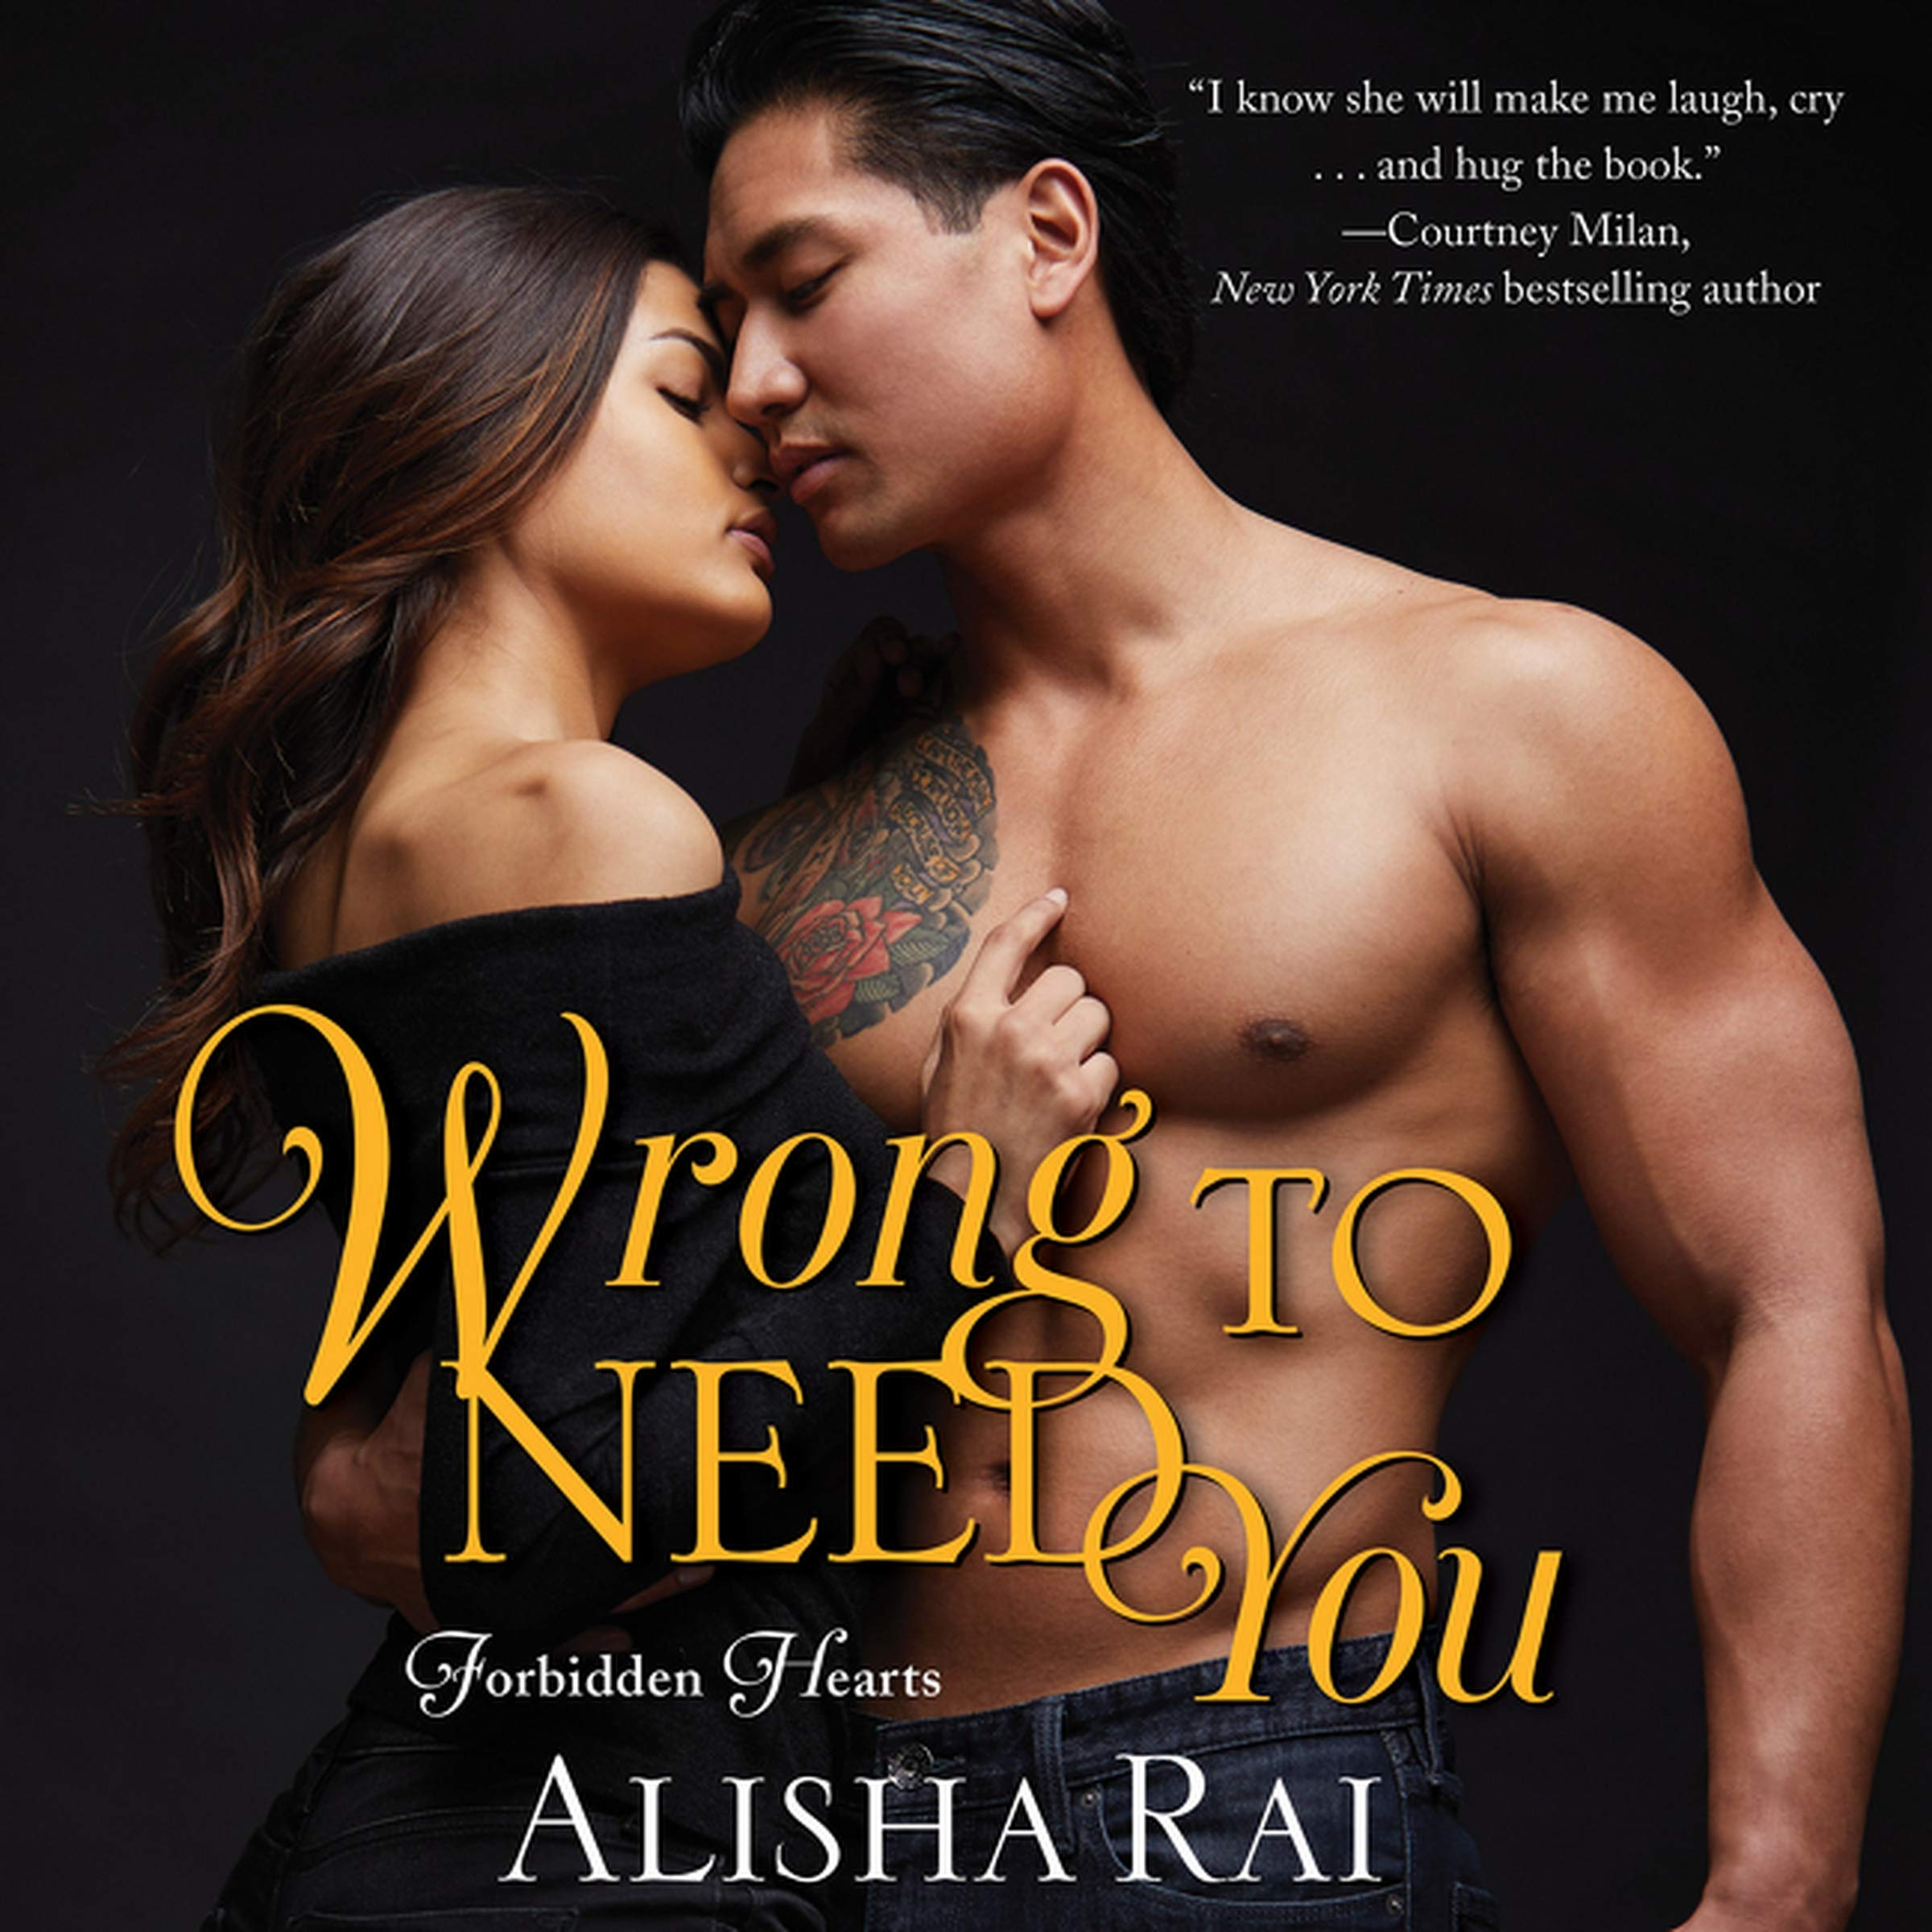 Wrong to Need You: The Forbidden Hearts Series, book 2